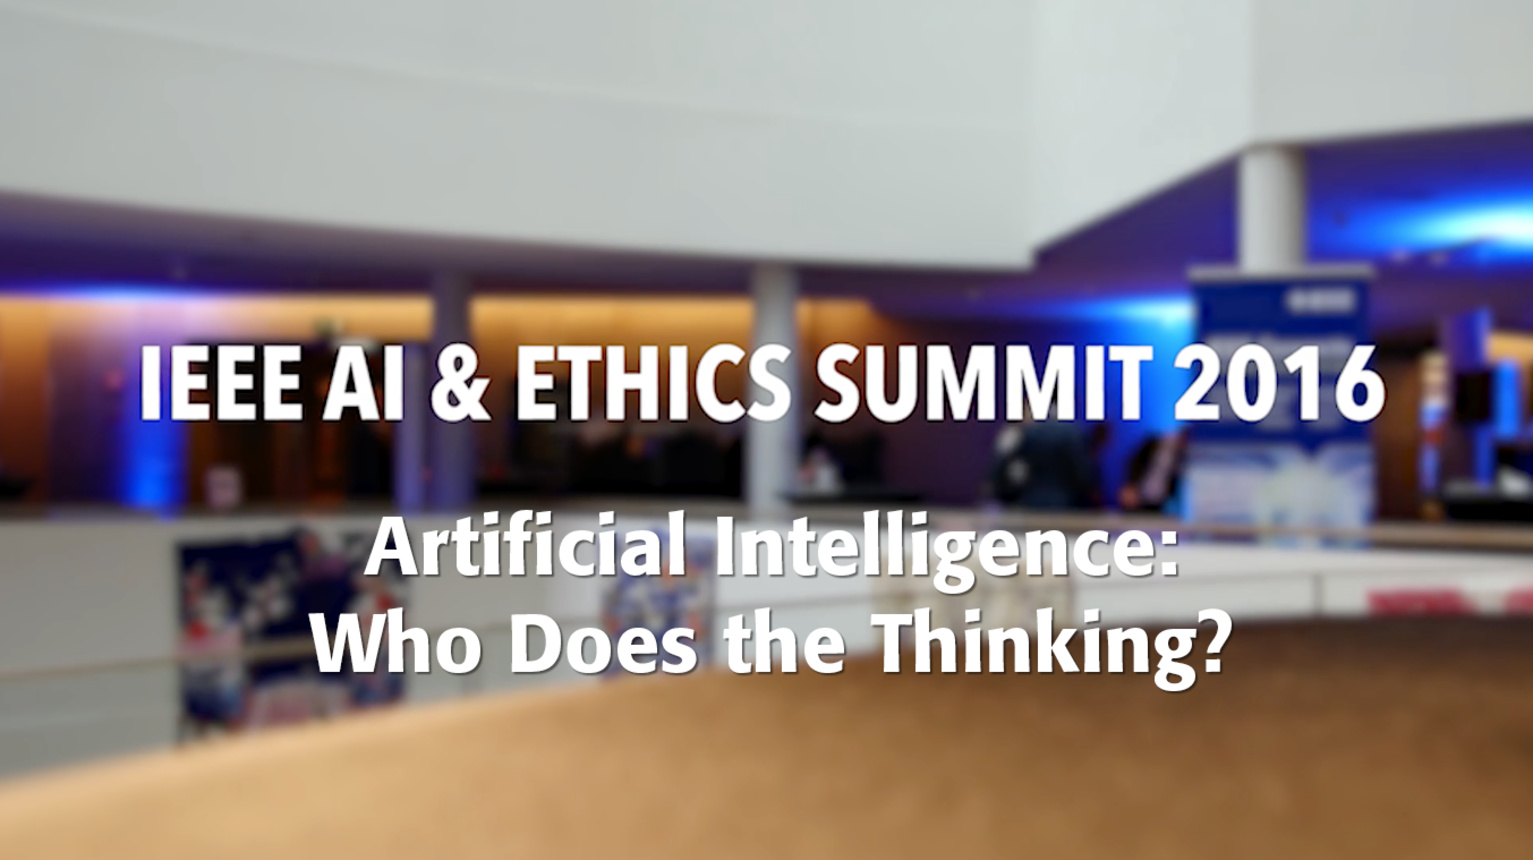 Artificial Intelligence: Who Does the Thinking? - Recap of the IEEE AI & Ethics Summit, 2016